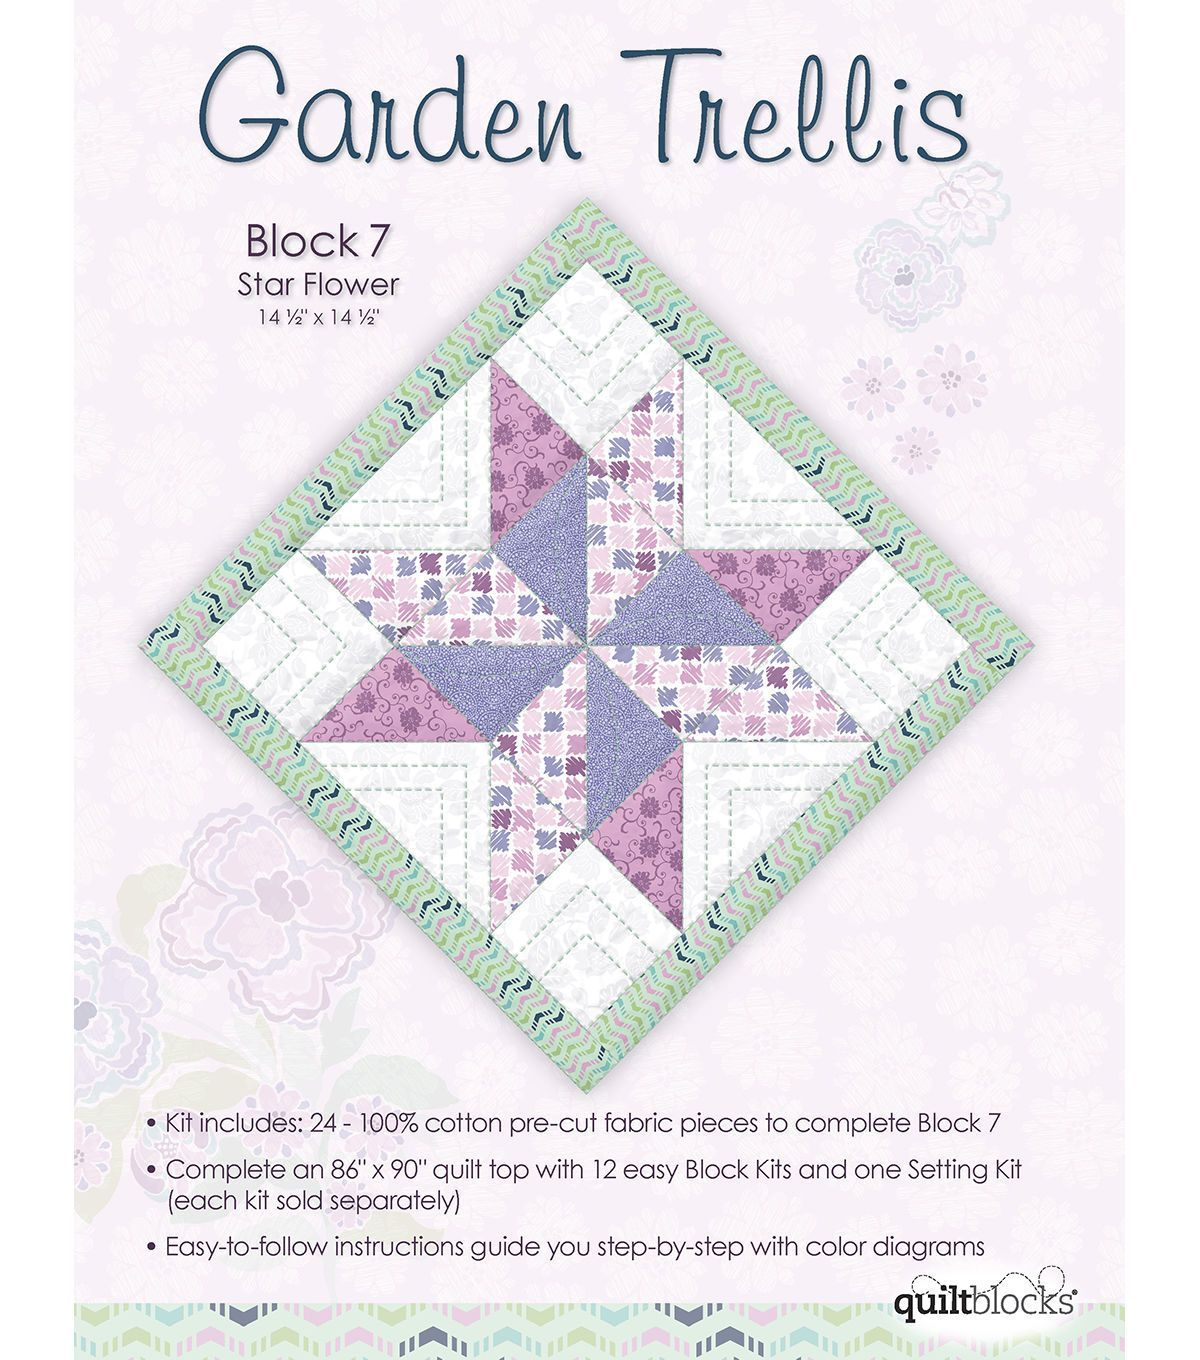 Quilt Block of the Month Cotton Fabric Garden Trellis Block 7